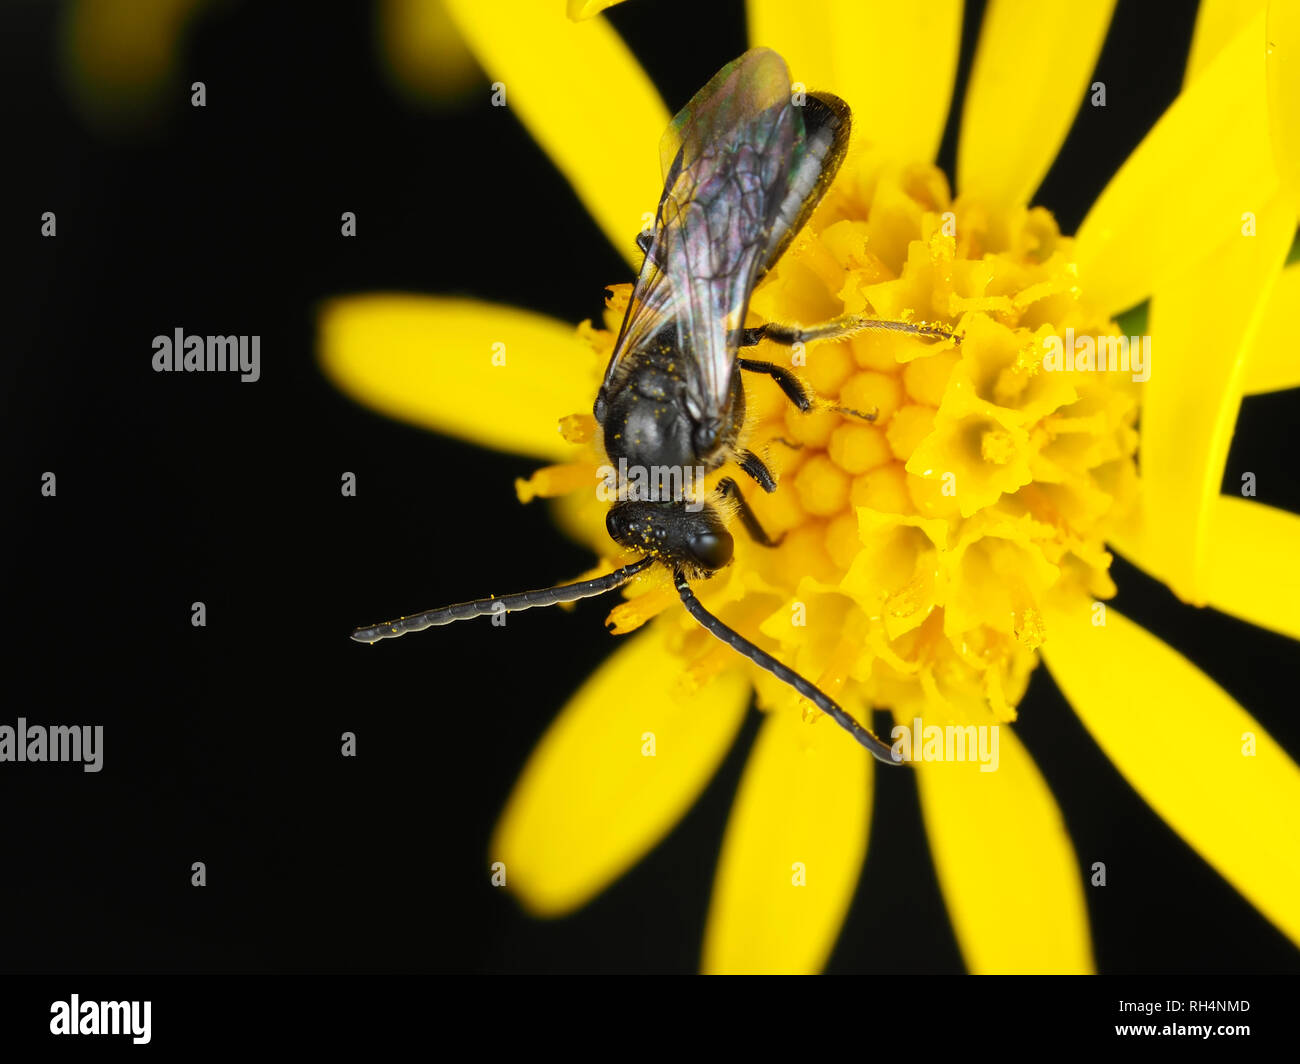 Male sweat bee, Lasioglossum sp. (or, less likely, Halictus sp.), on a flower - Stock Image